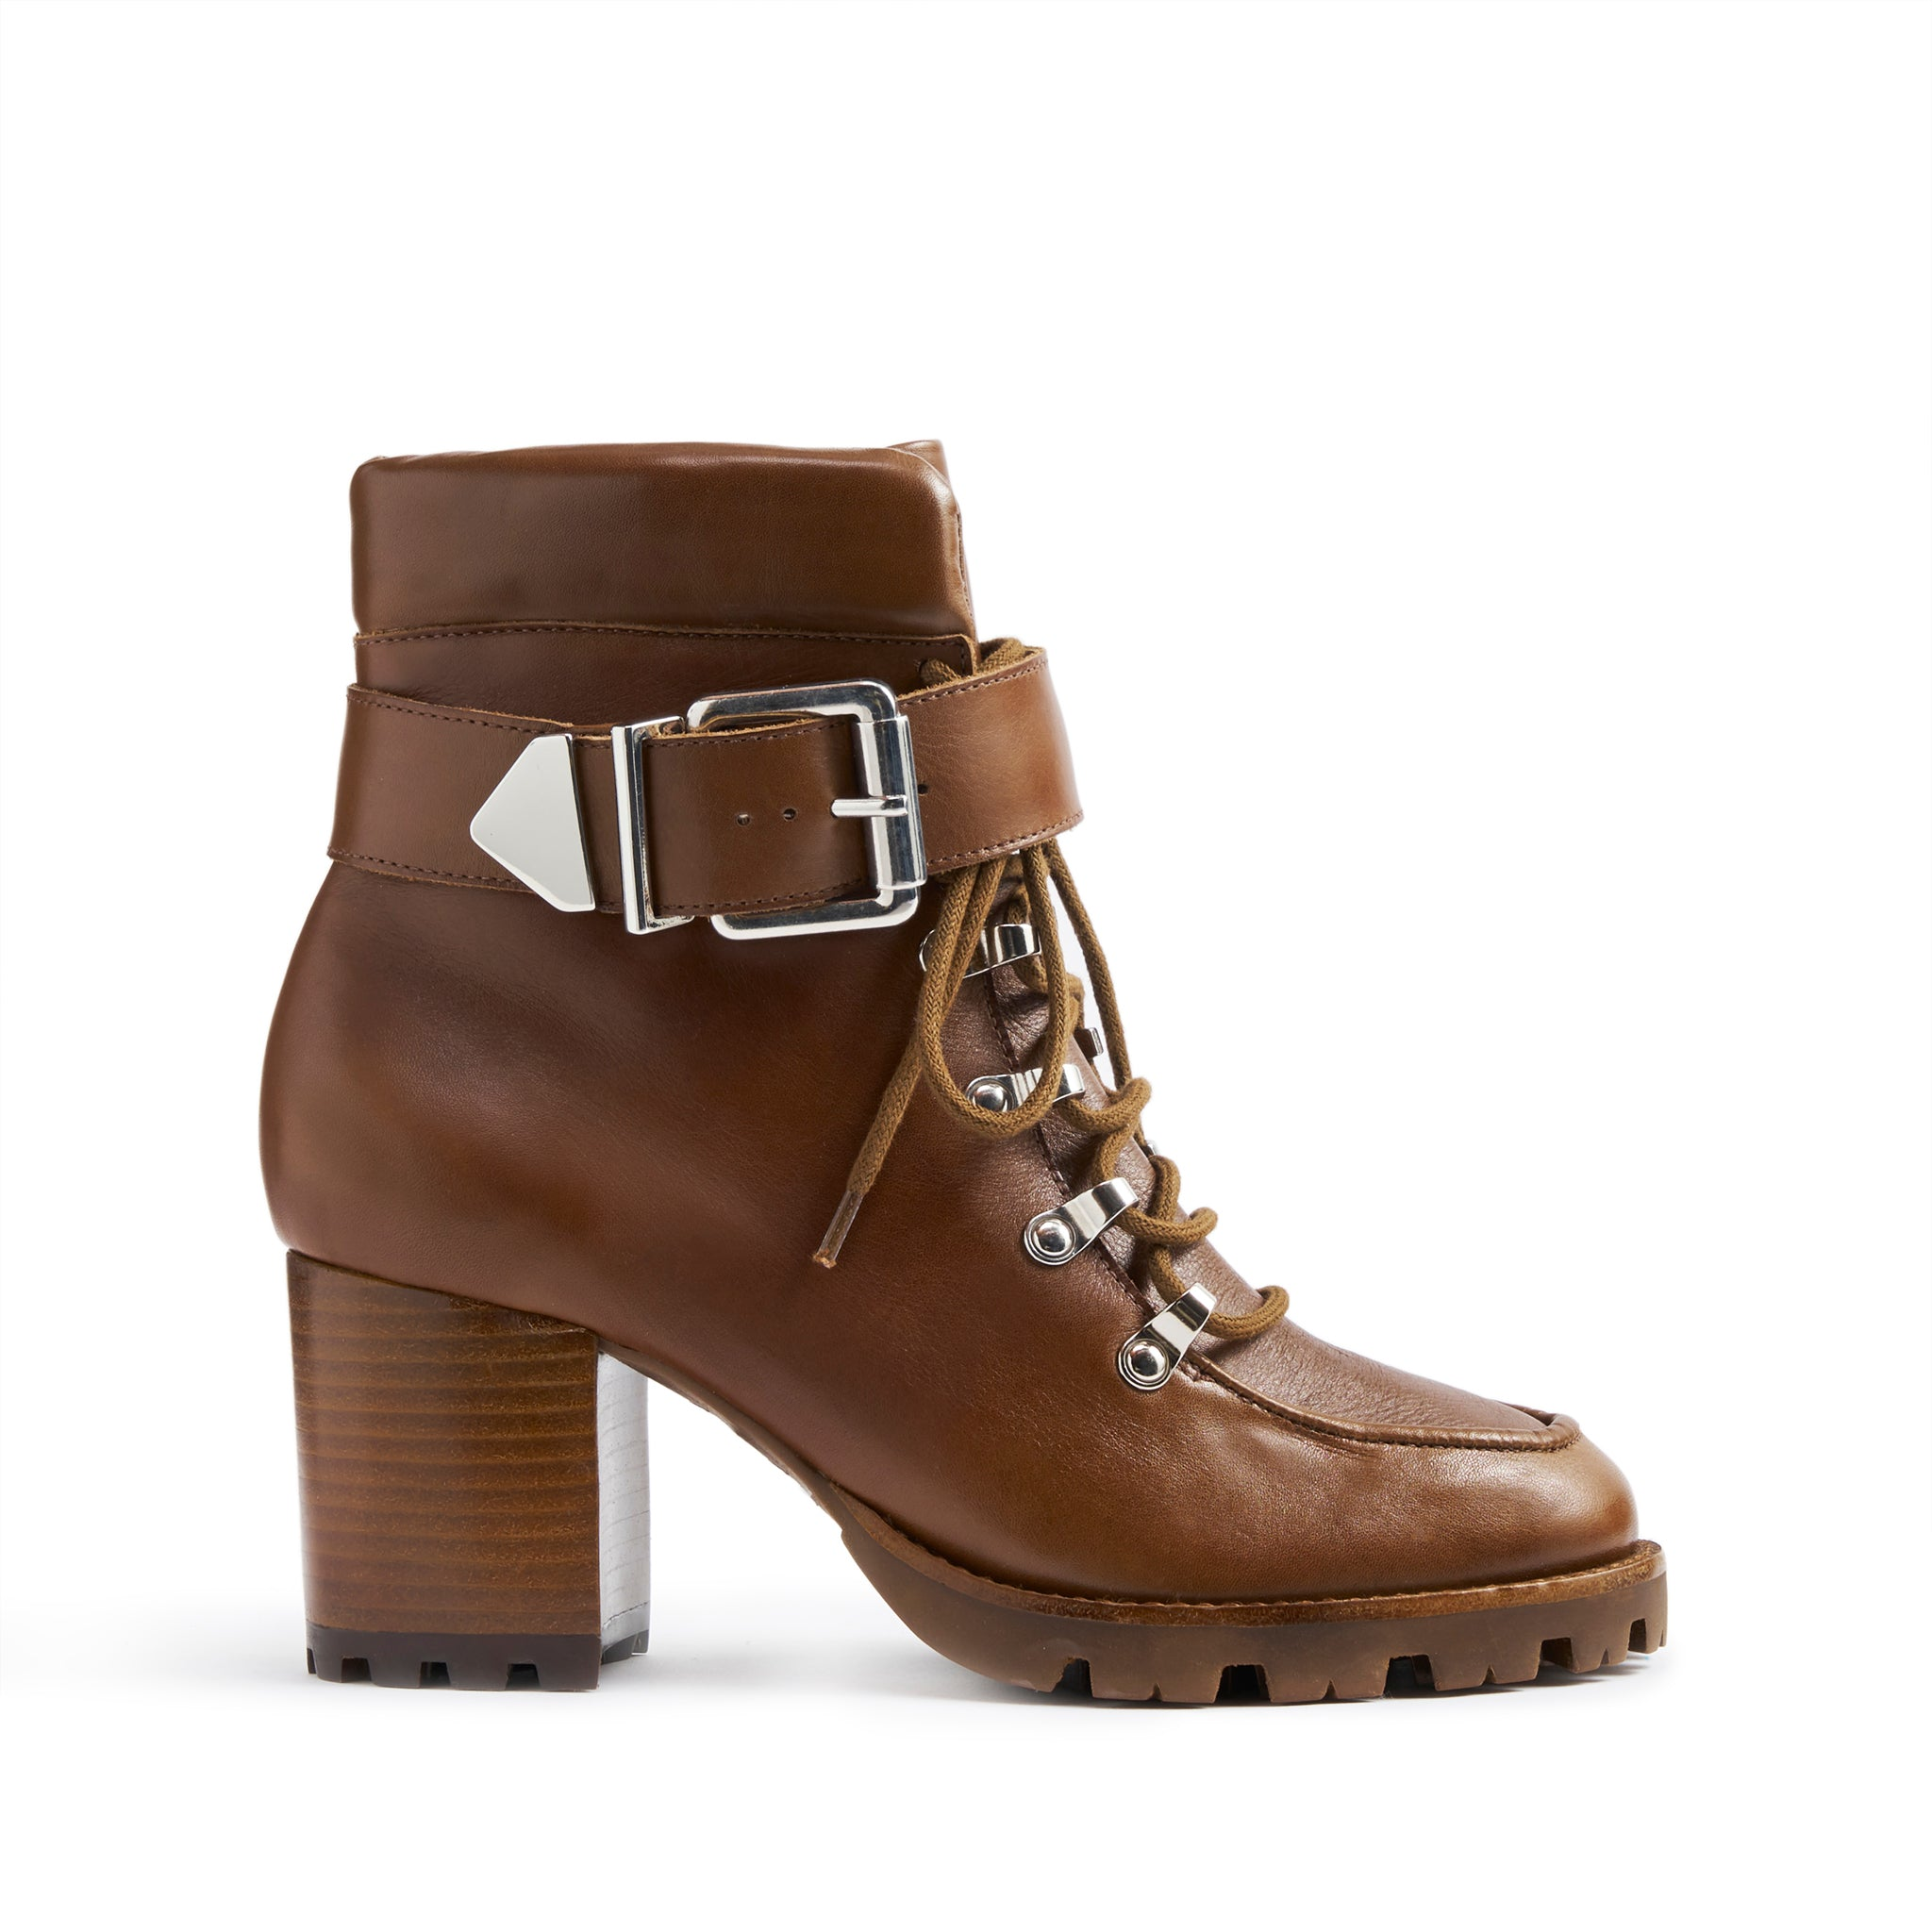 Siggy Booties Bear Leather